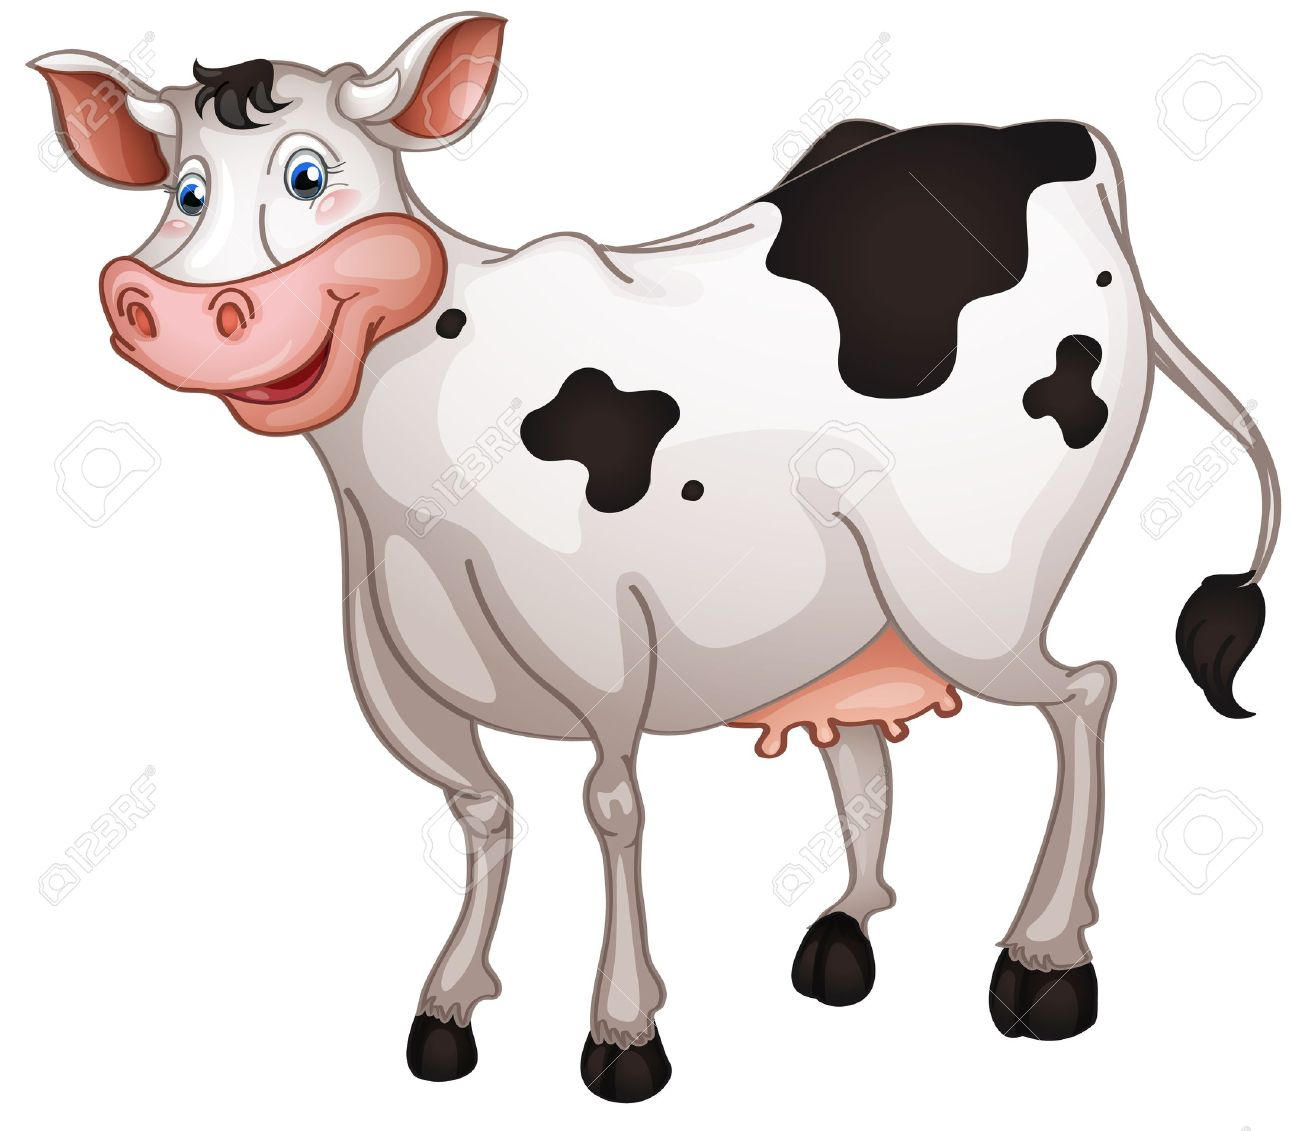 14411836-illustration-of-cow-in-a-white-background-Stock-Vector-cow-clipart-milk.jpg (1300×1130)